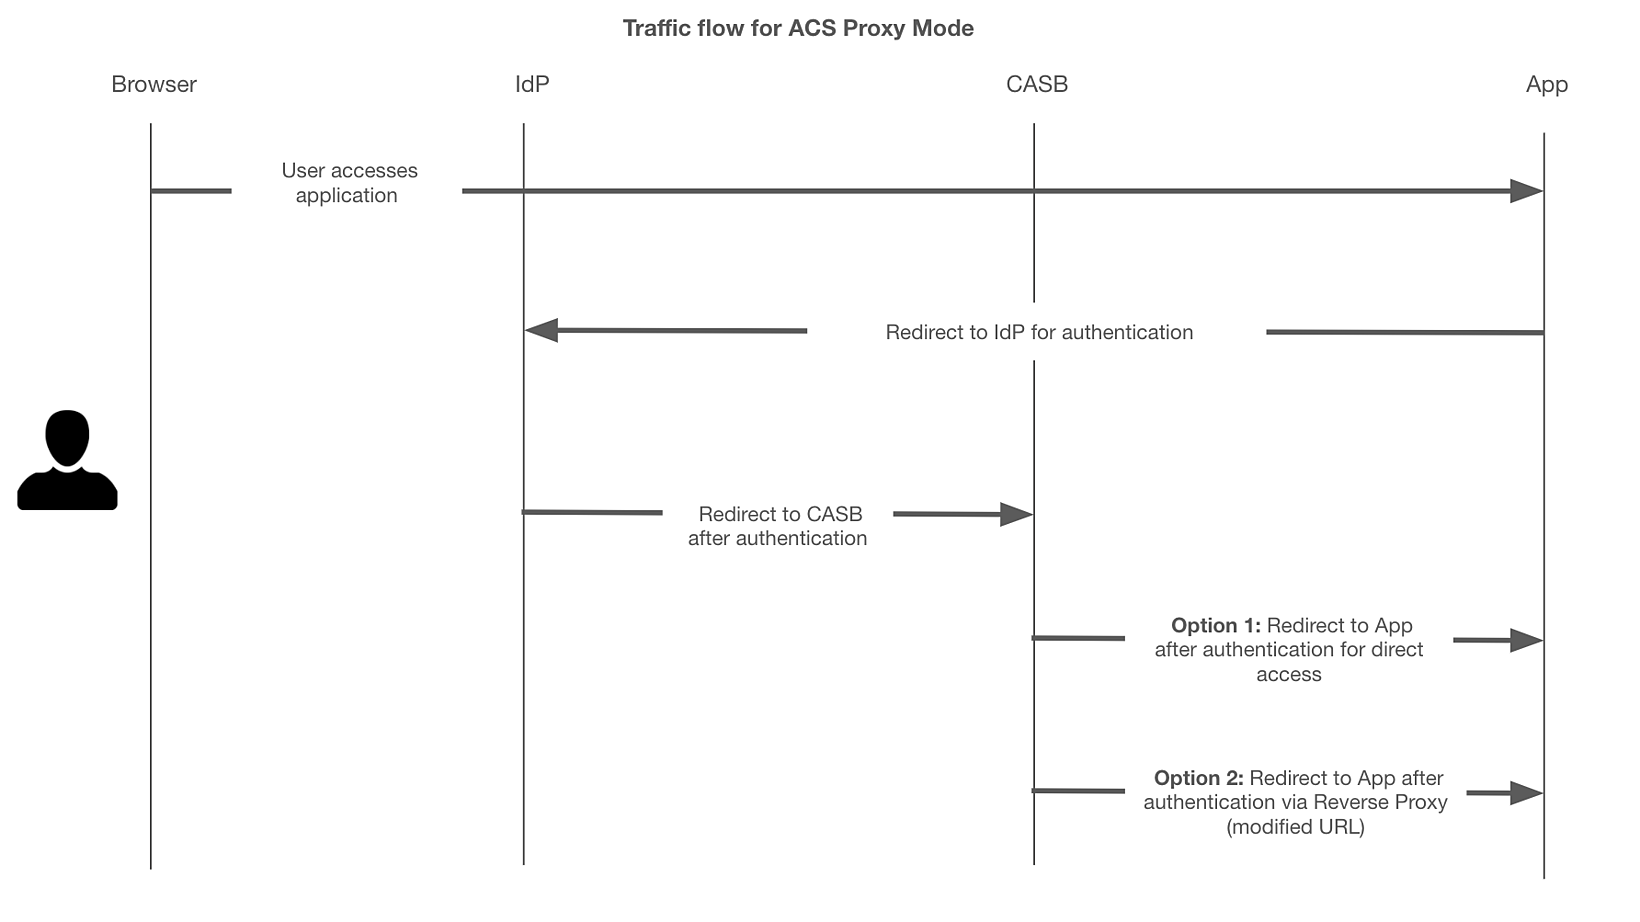 Traffic flow for ACS Proxy